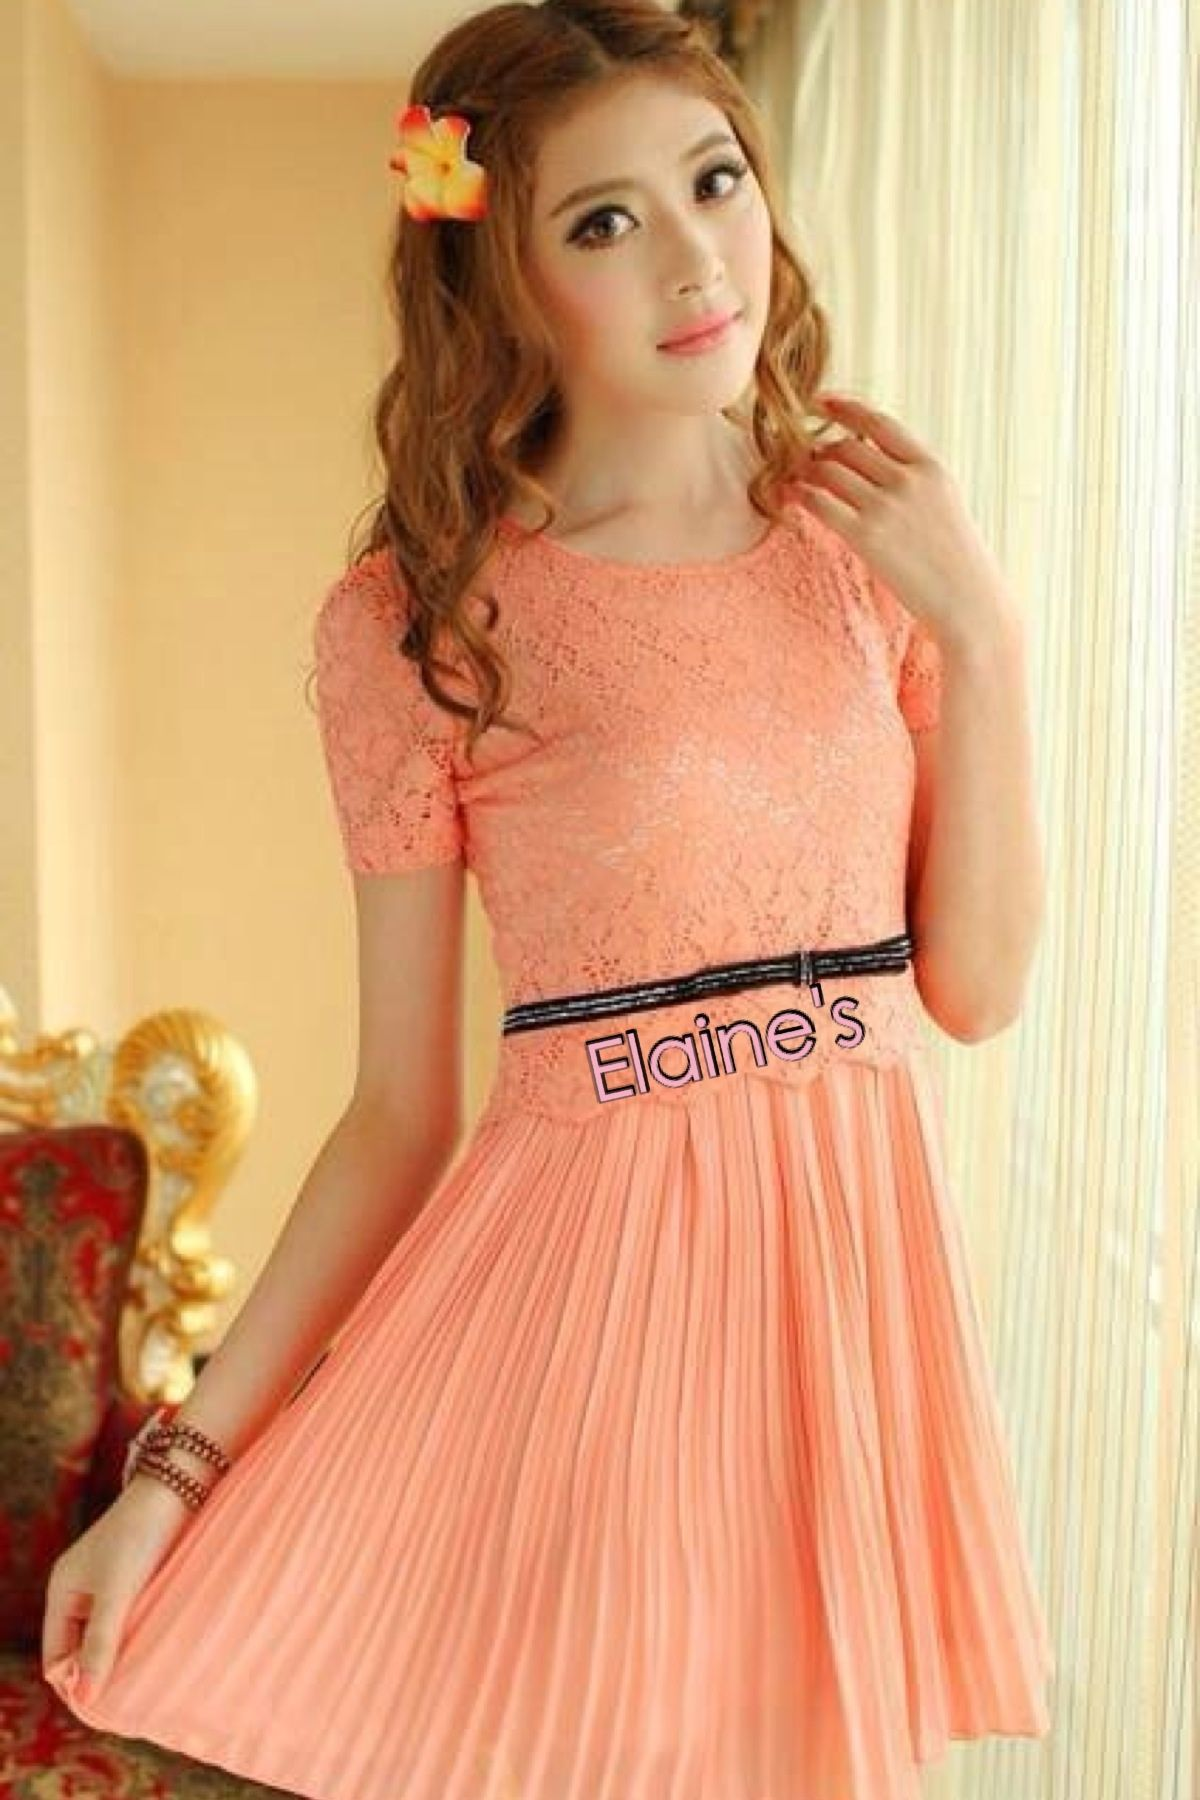 Peach summer dress in upscale new korean temperament of slim plus